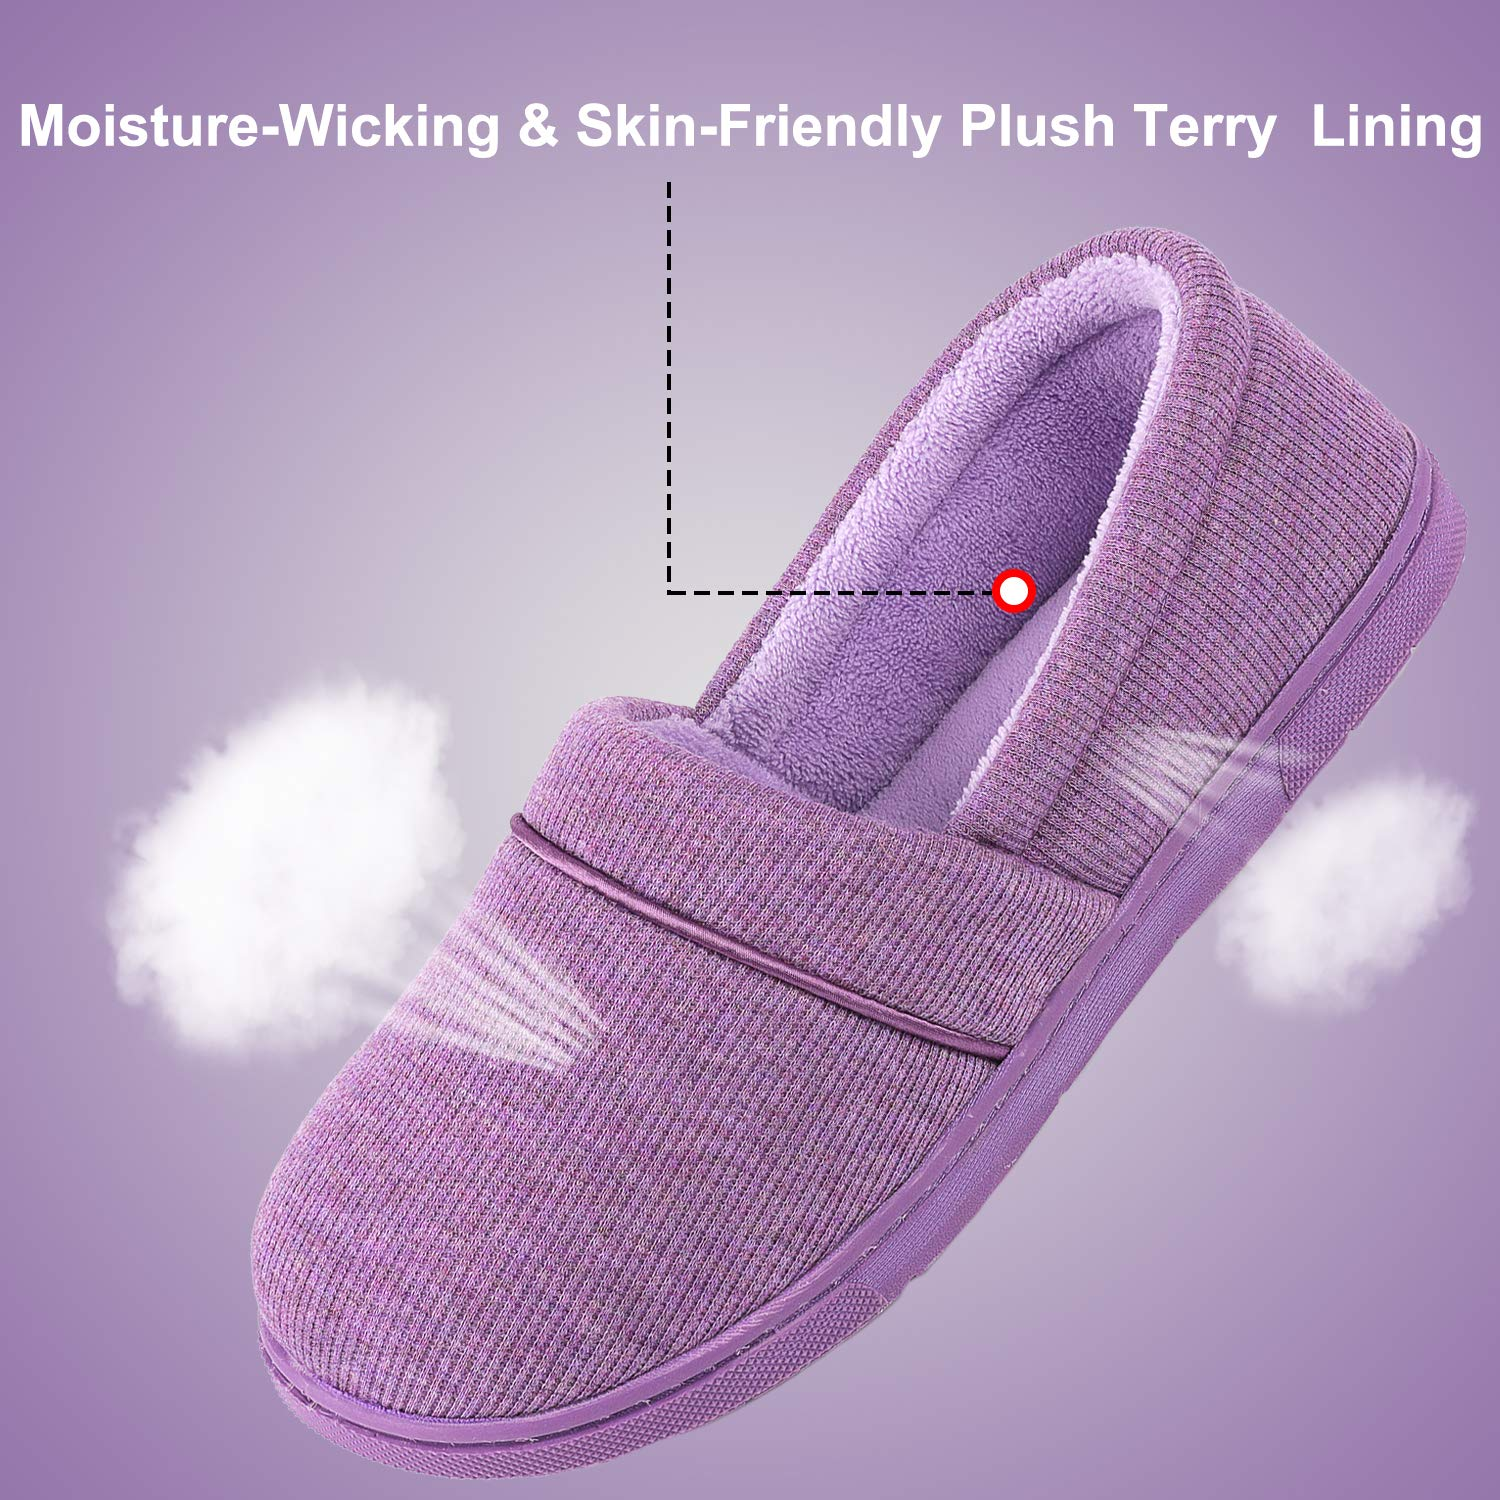 ULTRAIDEAS Womens Comfy Memory Foam Cotton Knit Slippers Ladies Plush Terry Lining Loafer Lightweight House Shoes with Indoor Outdoor Anti-Skid Rubber Sole